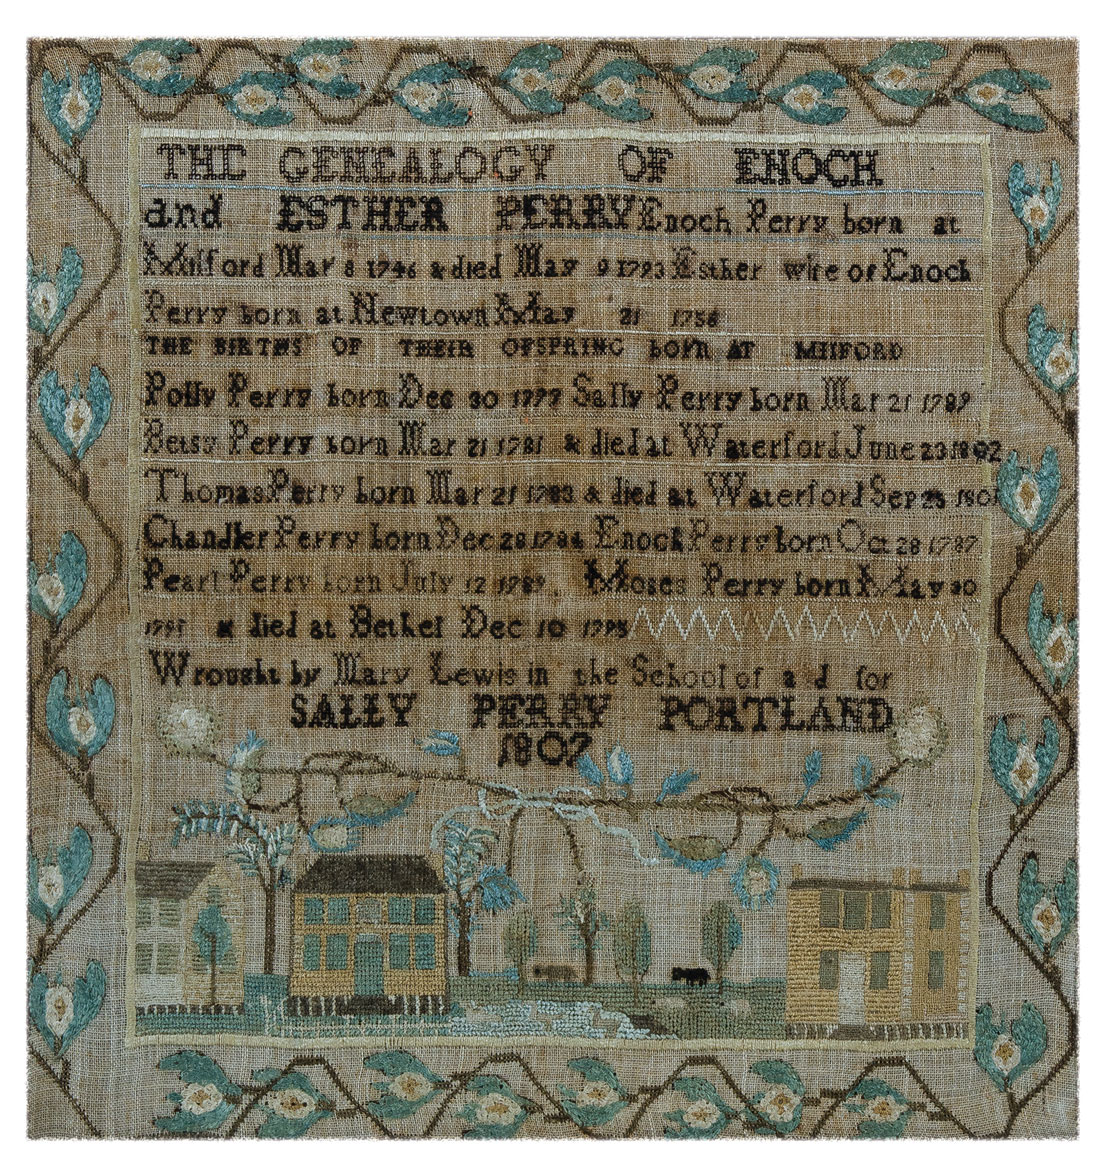 family register sampler from Misses Martin's School for Young Ladies in North Yarmouth